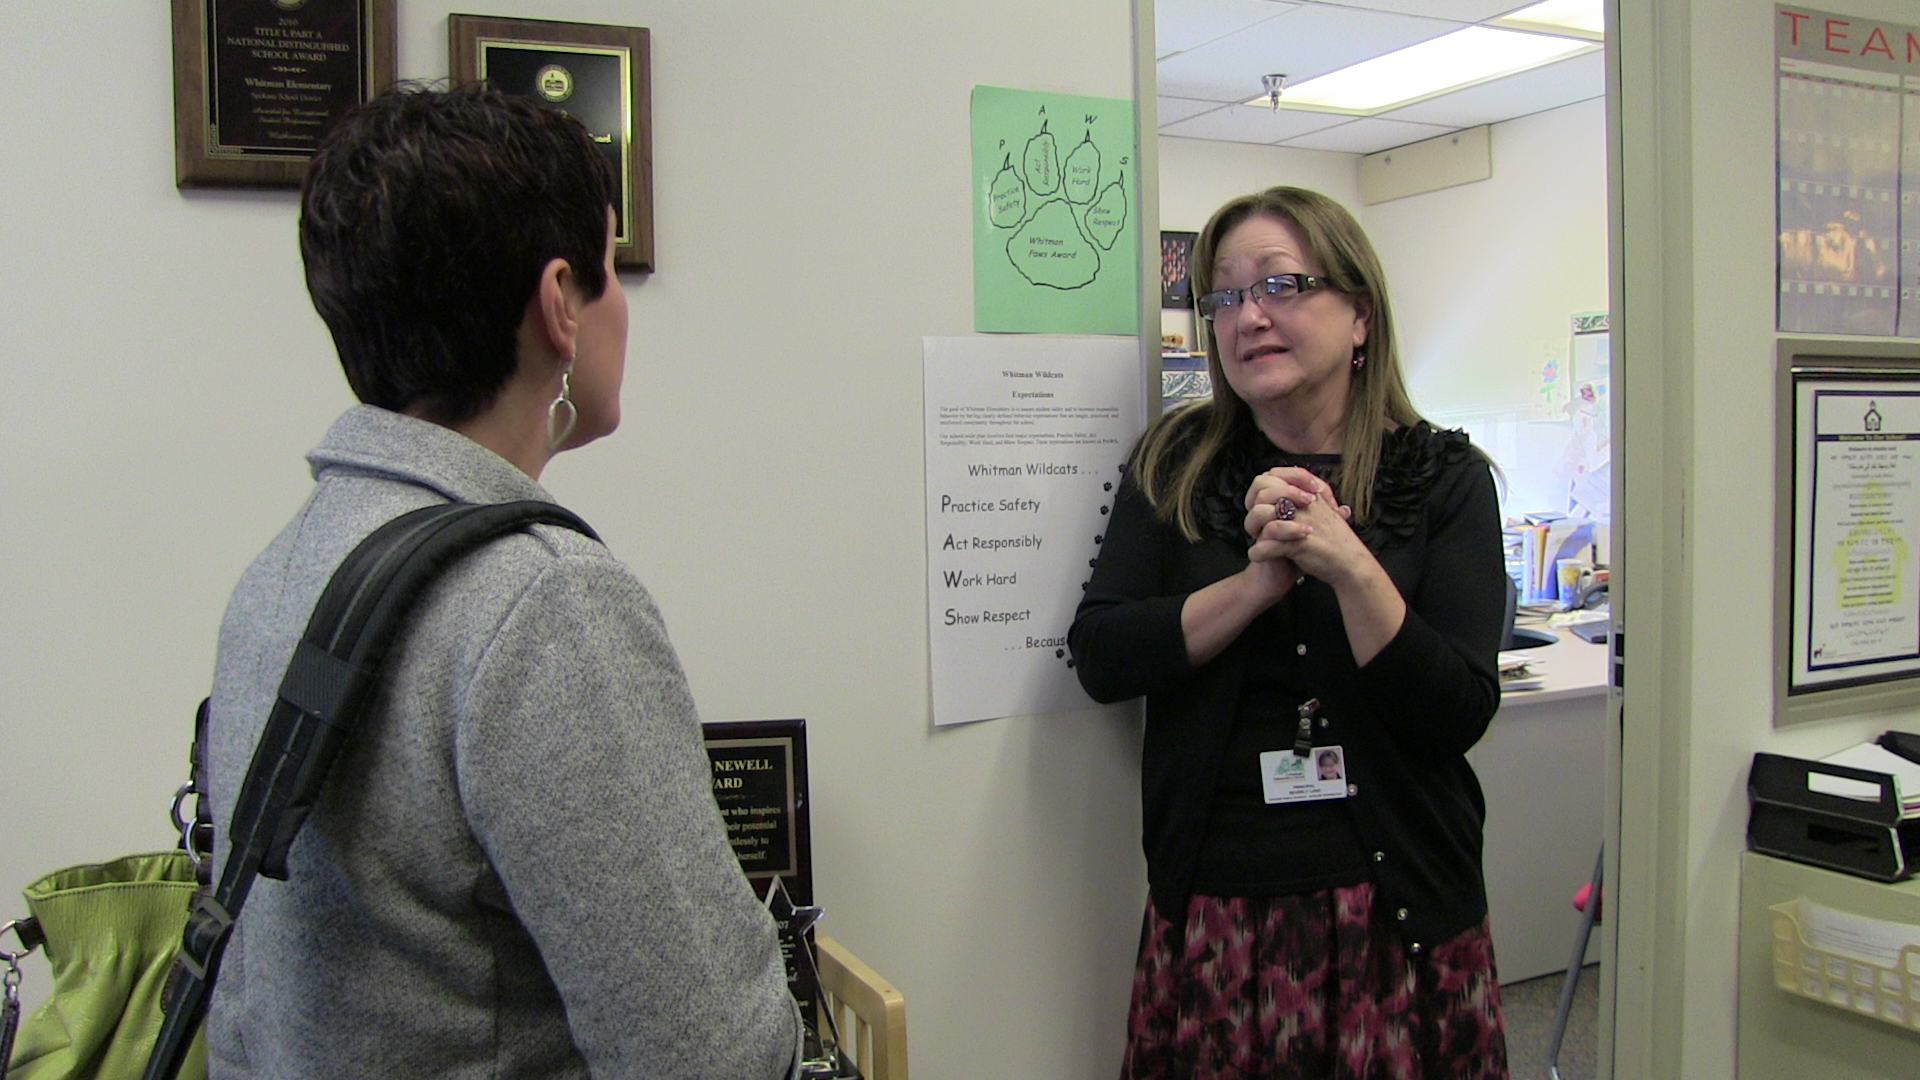 Beverly Lund, principal of Whitman Elementary School talks with Natalie Turner (back to camera).